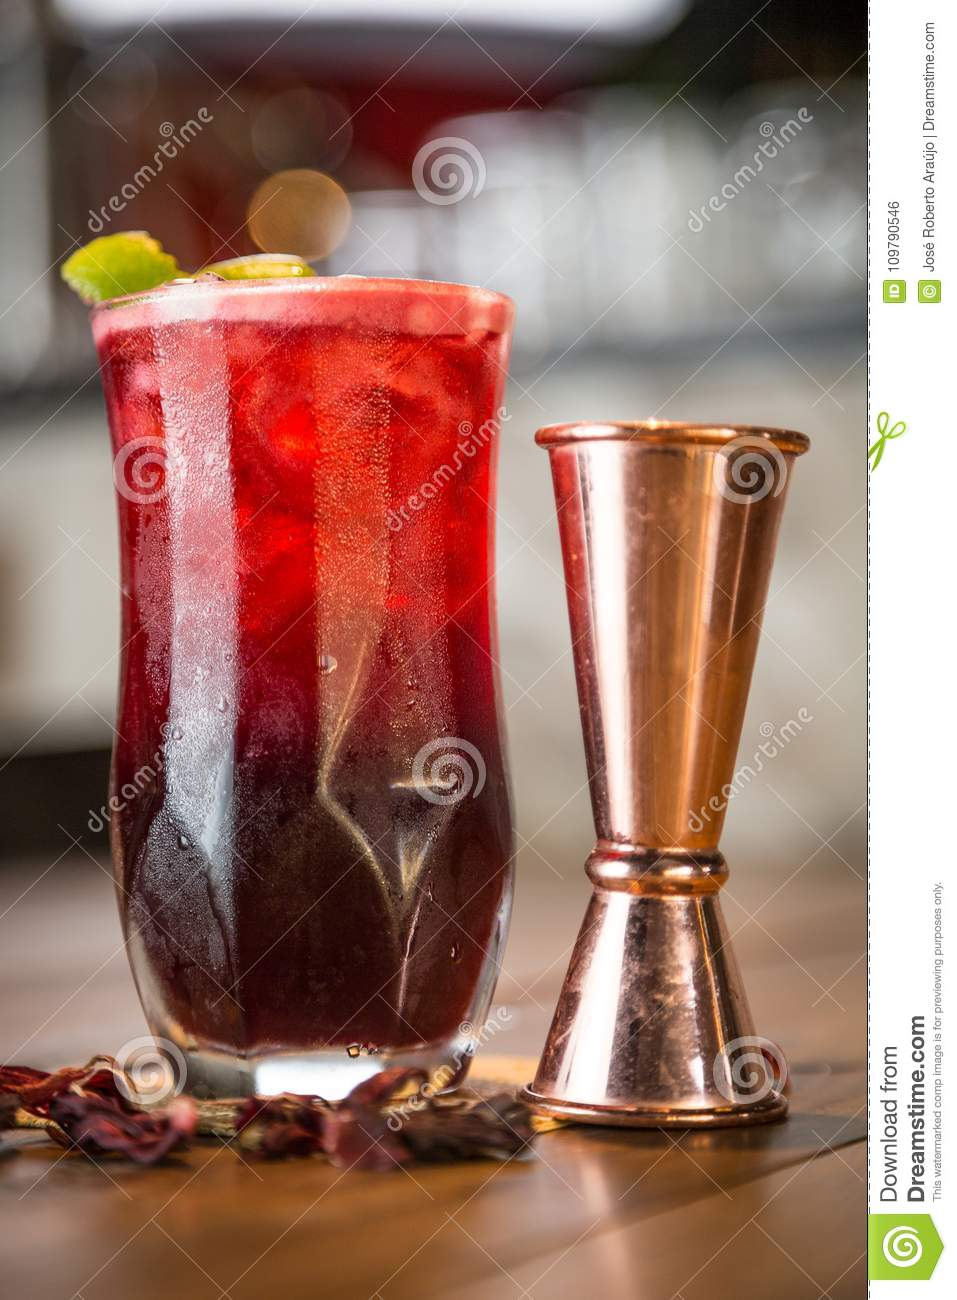 Hibiscus Drink Zk Stock Photo Image Of Sepals Fruit 109790546